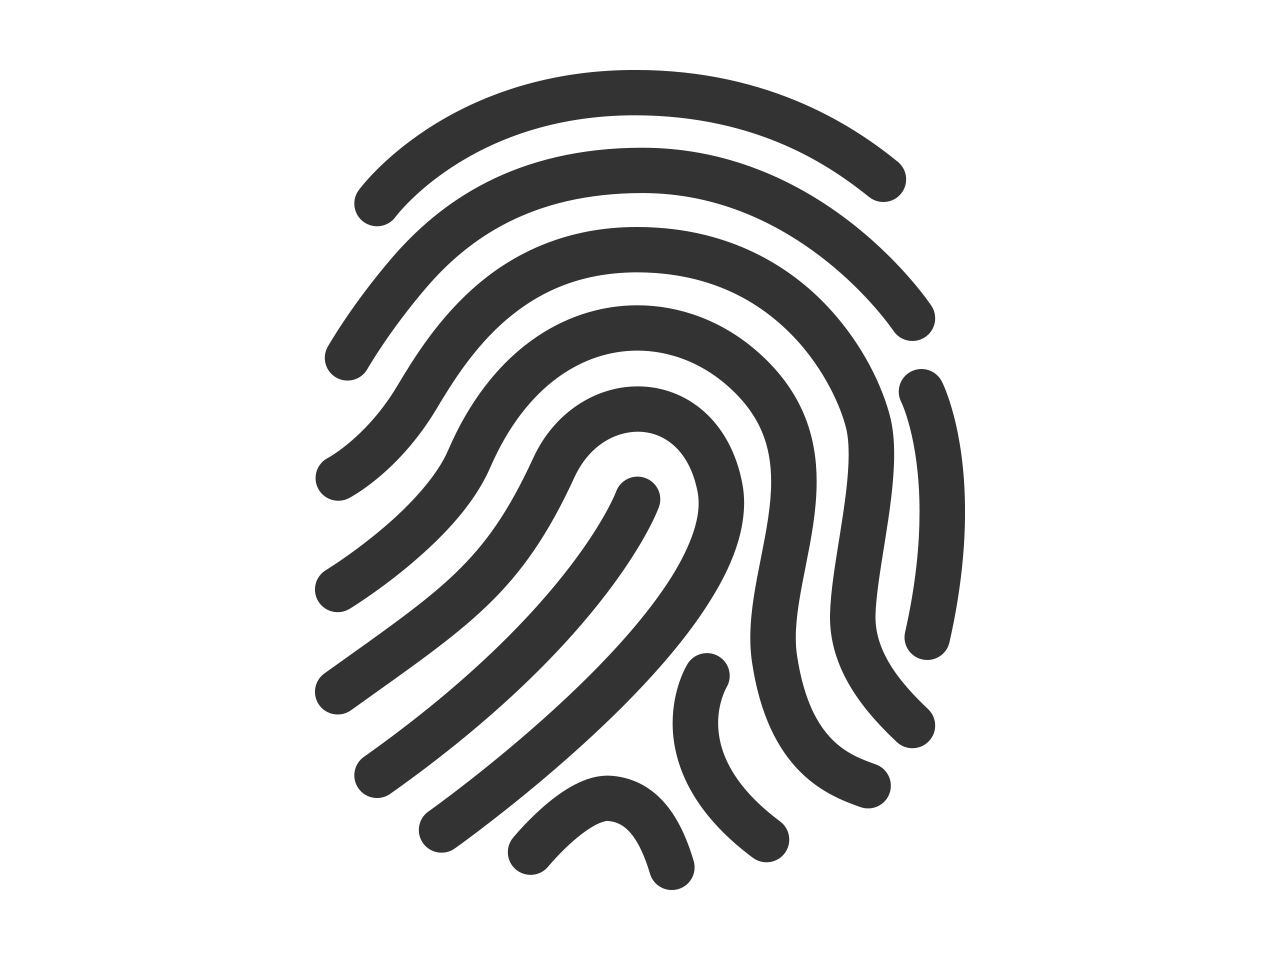 Png images all free. Fingerprint transparent animated image black and white library